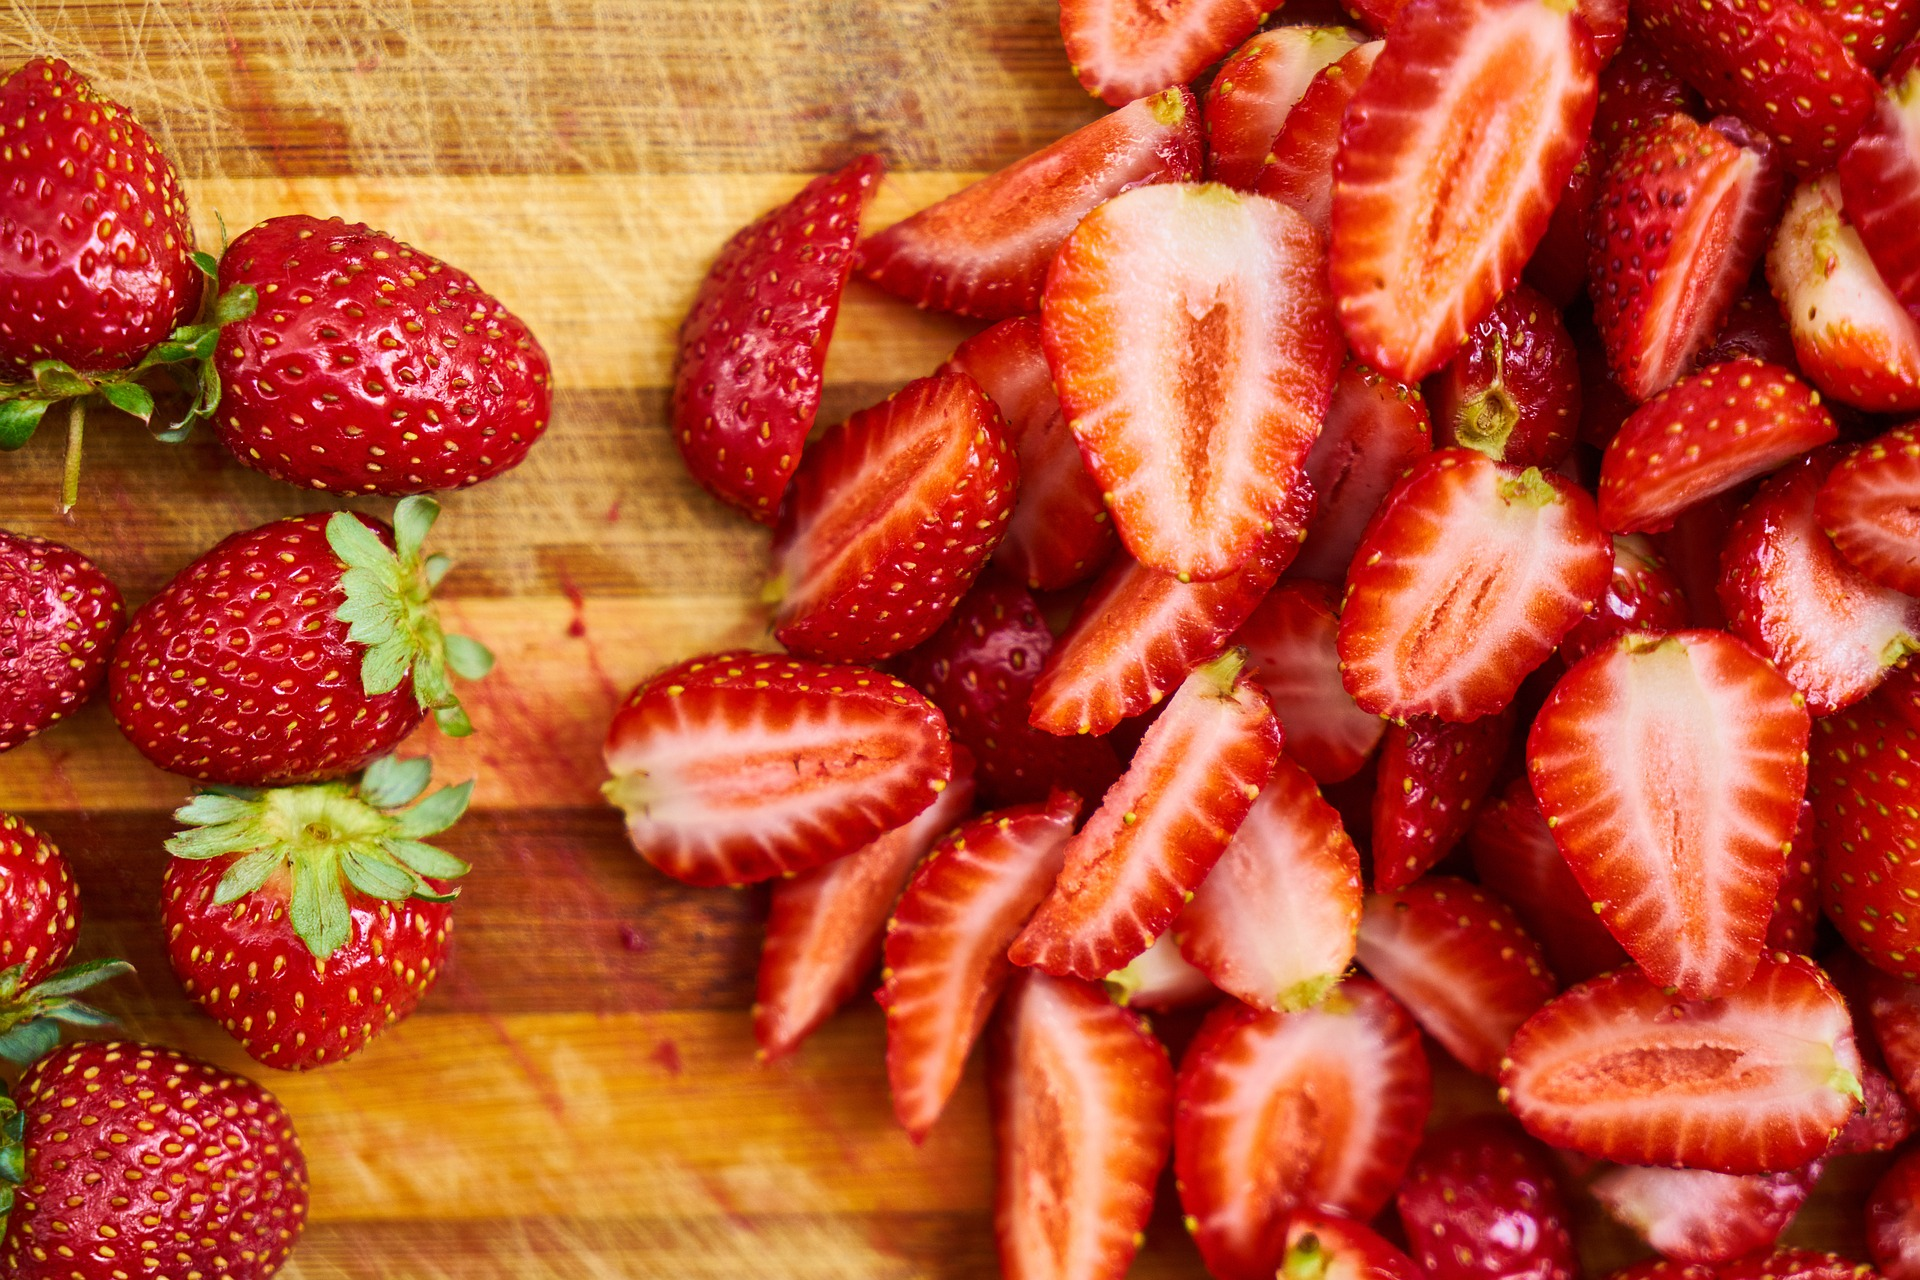 how to process strawberries